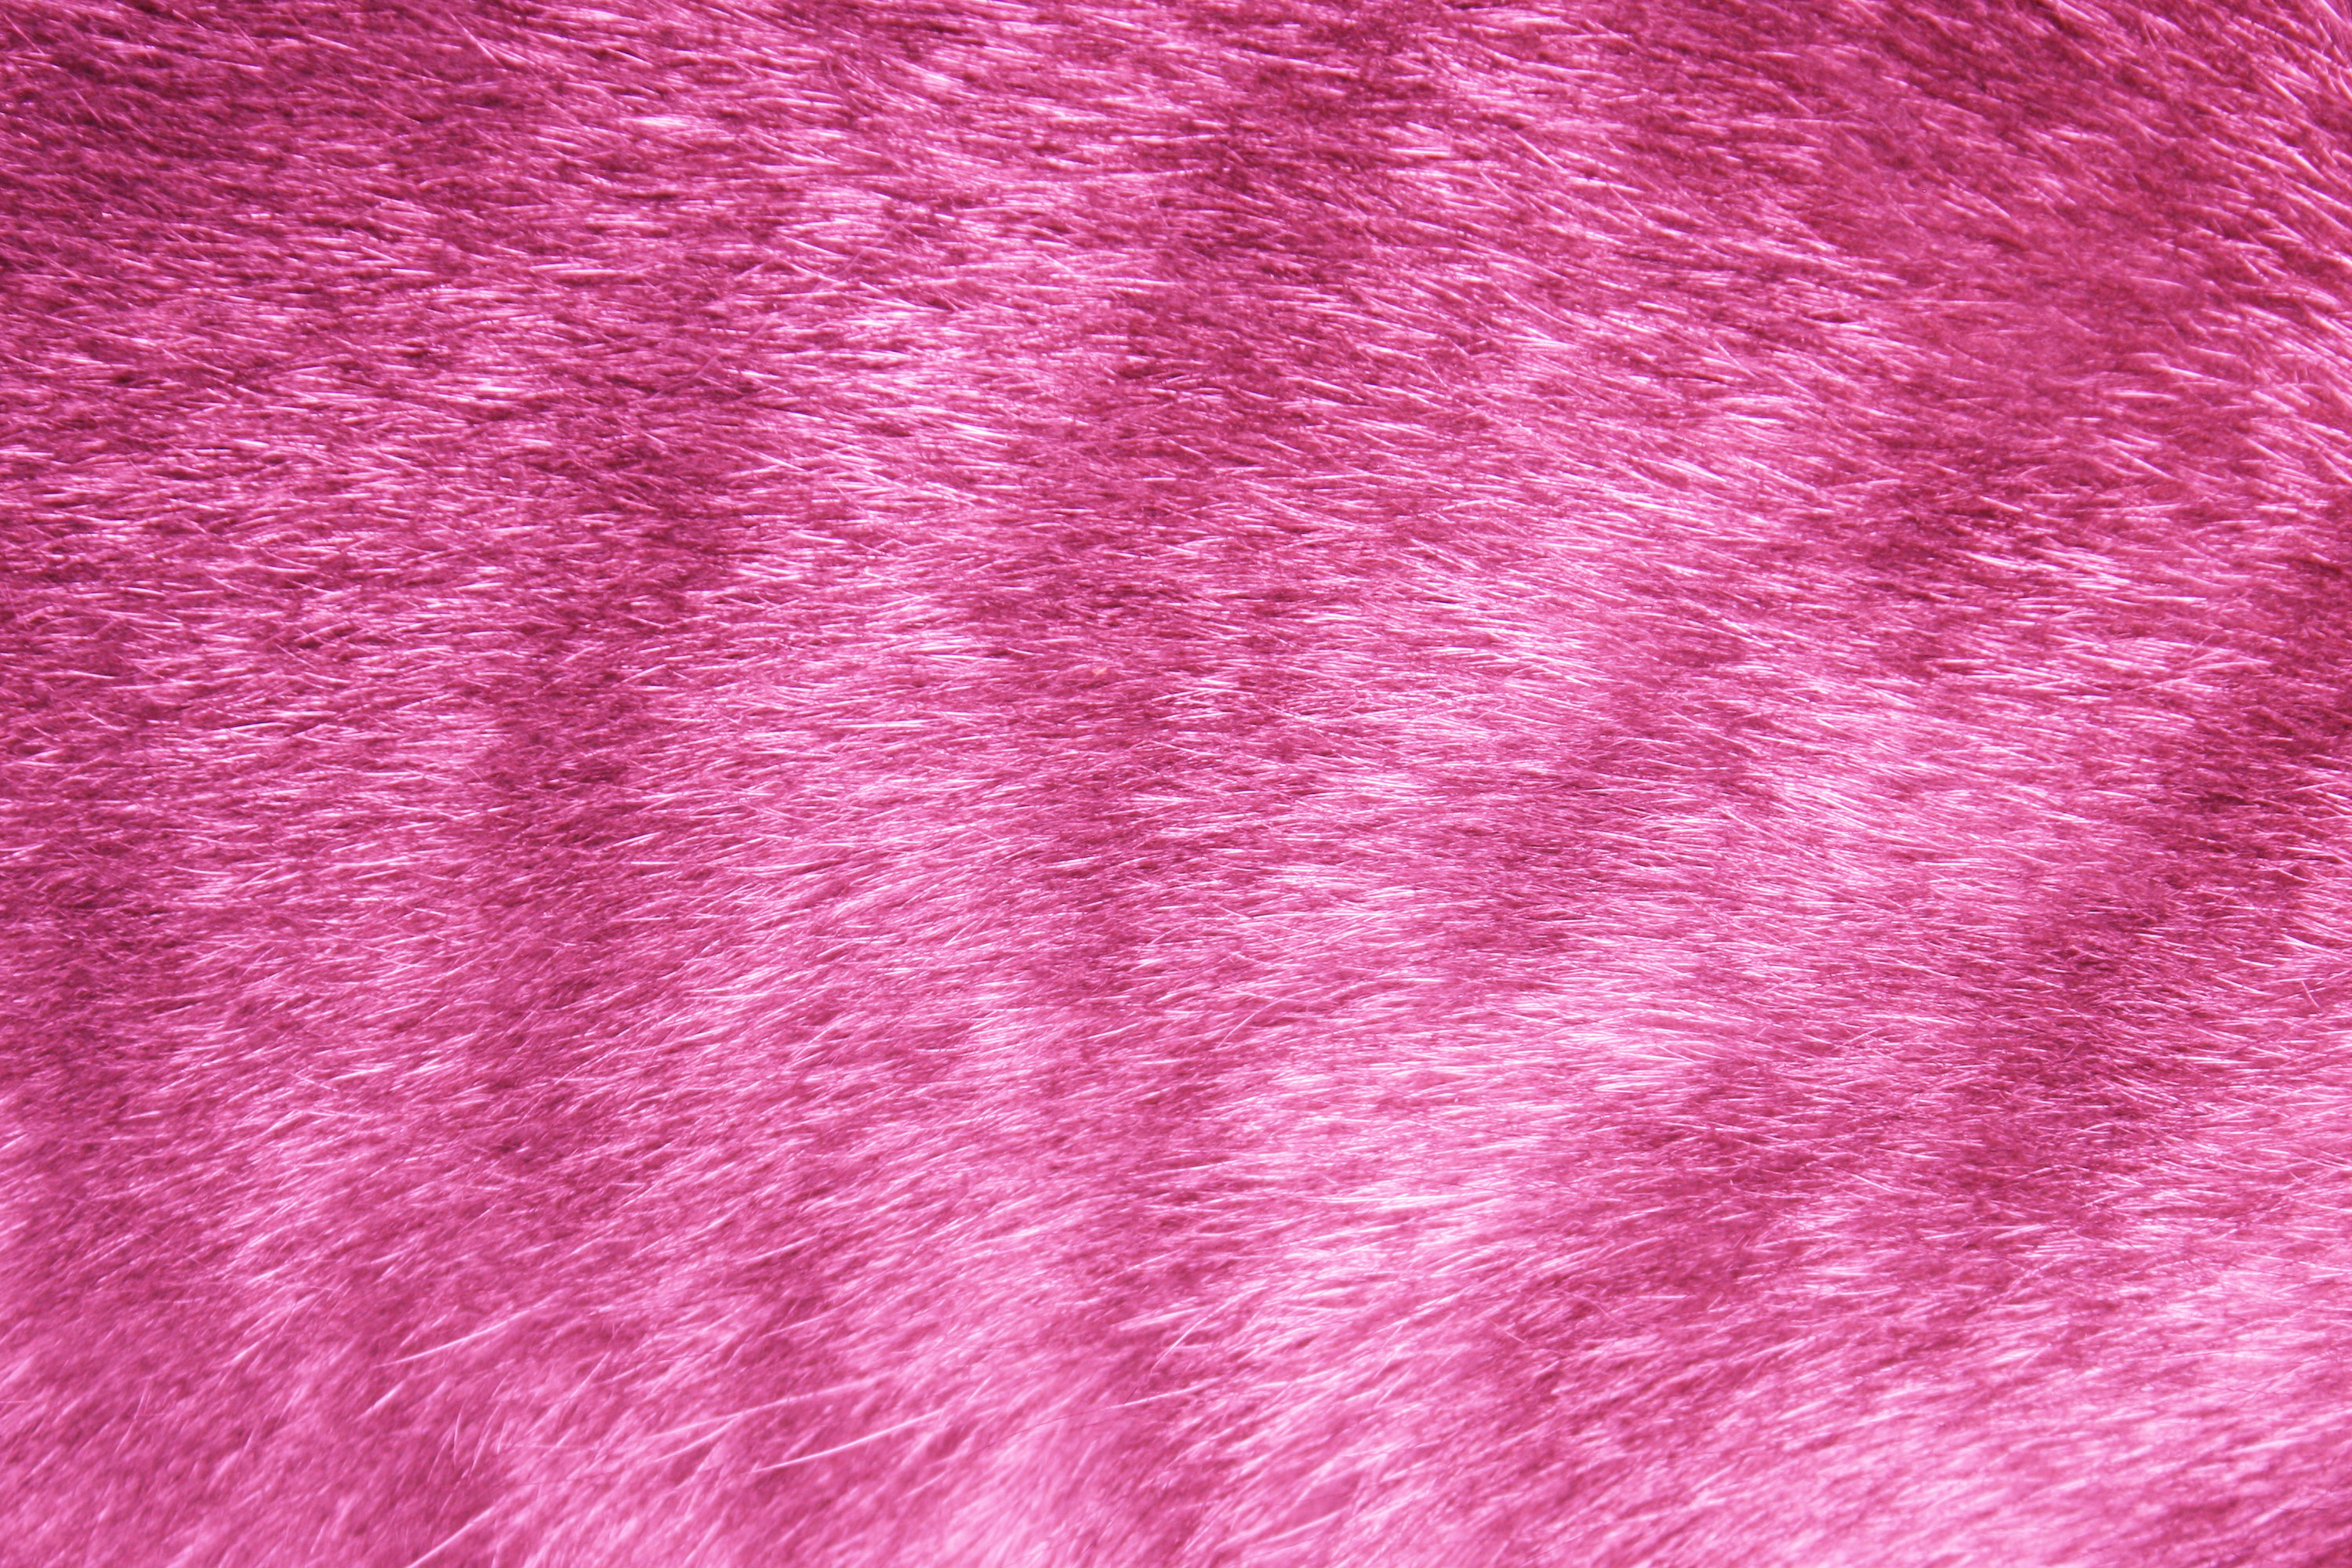 Pink Tabby Fur Texture   High Resolution Photo   Dimensions 3000 3000x2000